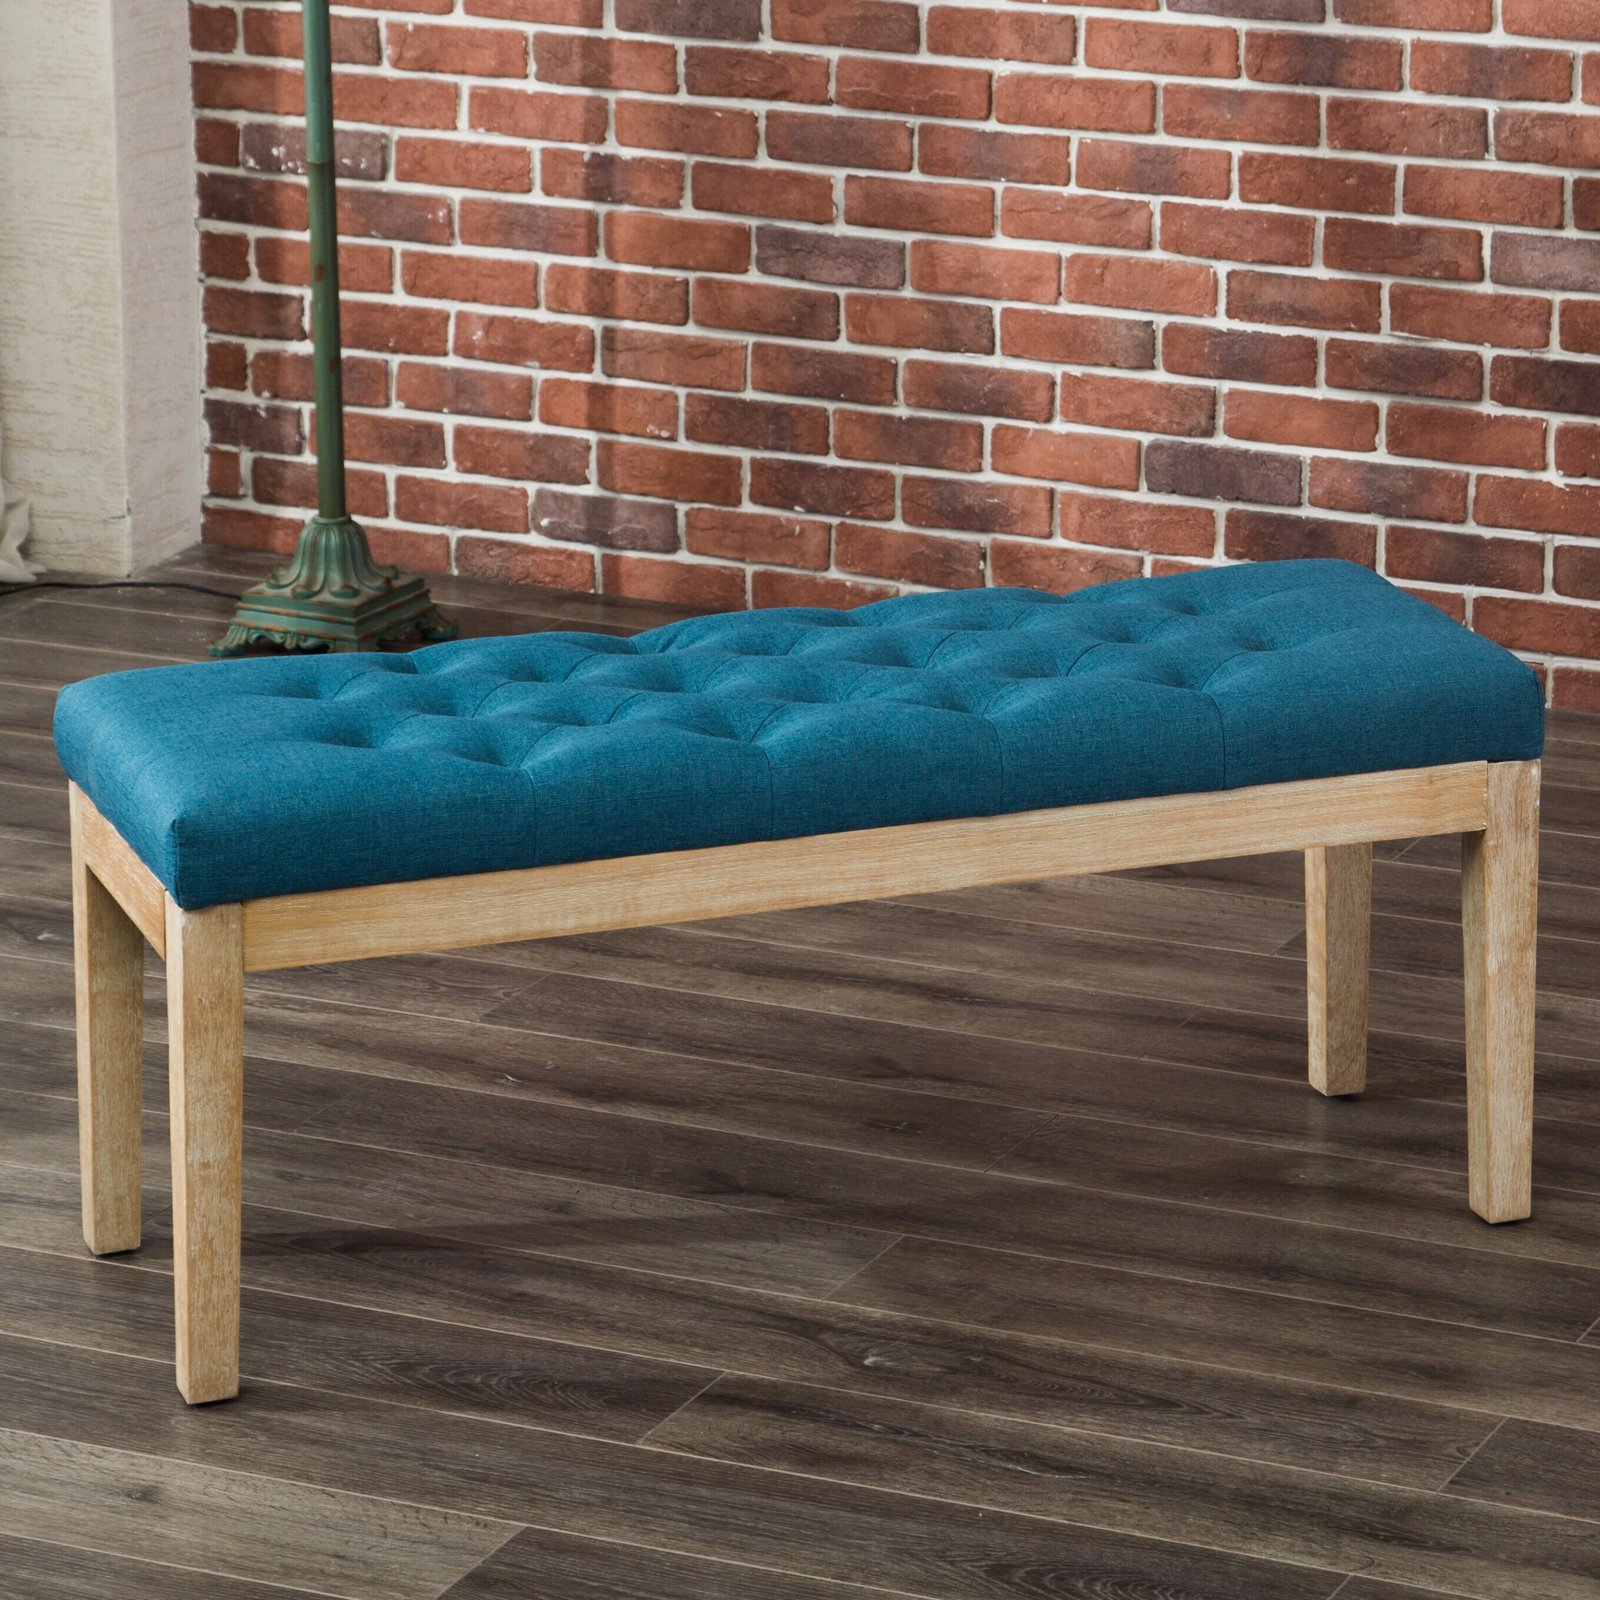 Beau Roundhill Mod Urban Style Solid Wood Button Tufted Fabric Dining Bench, Blue